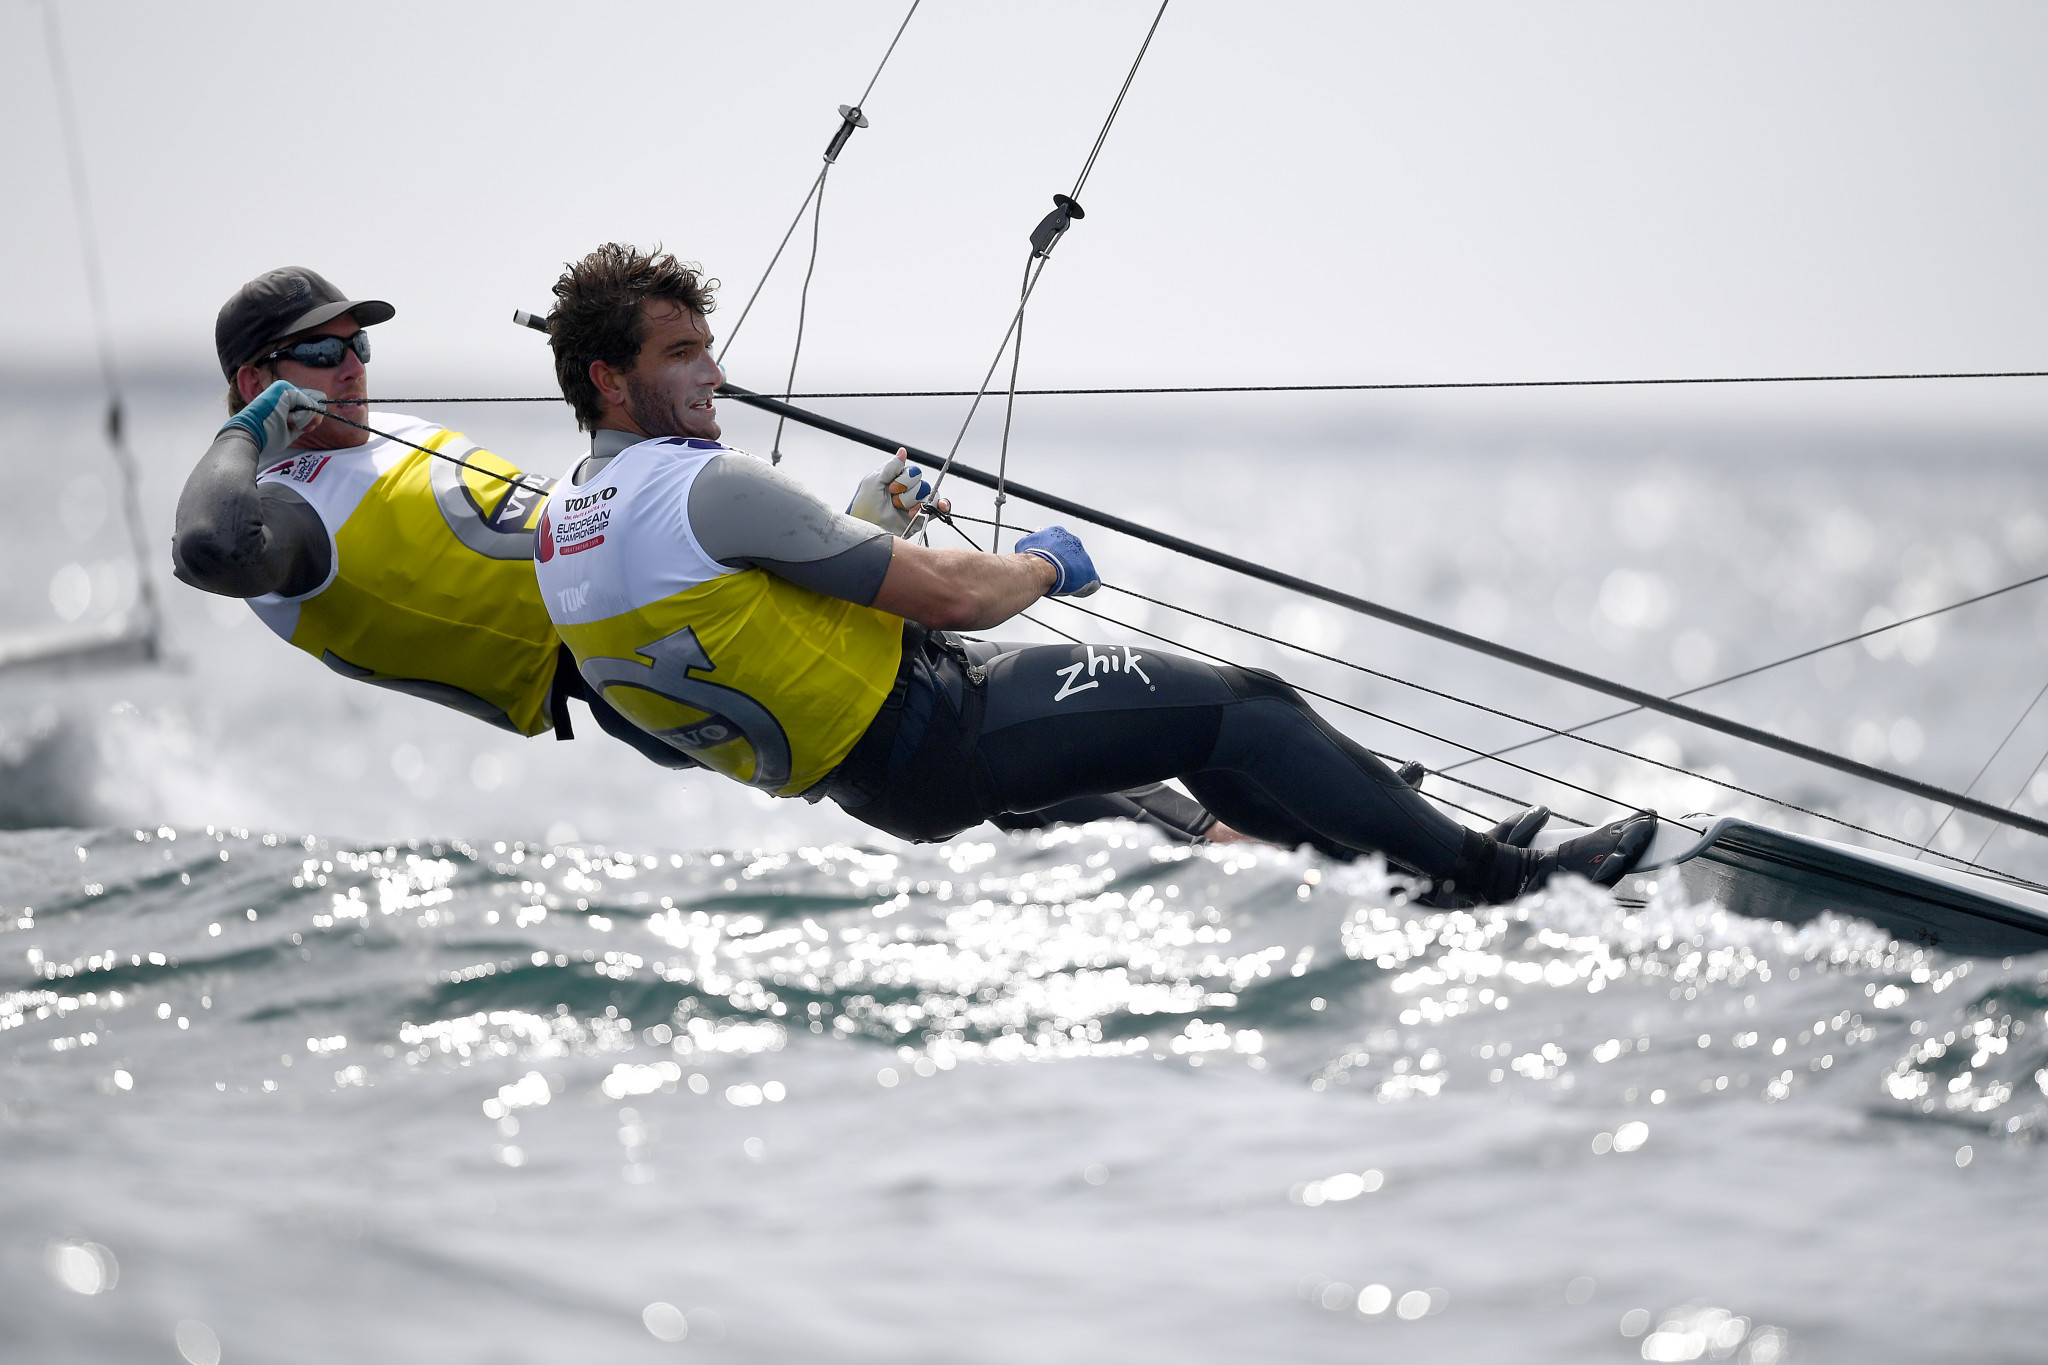 New Zealand's Peter Burling and Blair Tuke posted three solid results today to retake the lead at the 49er European Championships in Weymouth in England ©Getty Images